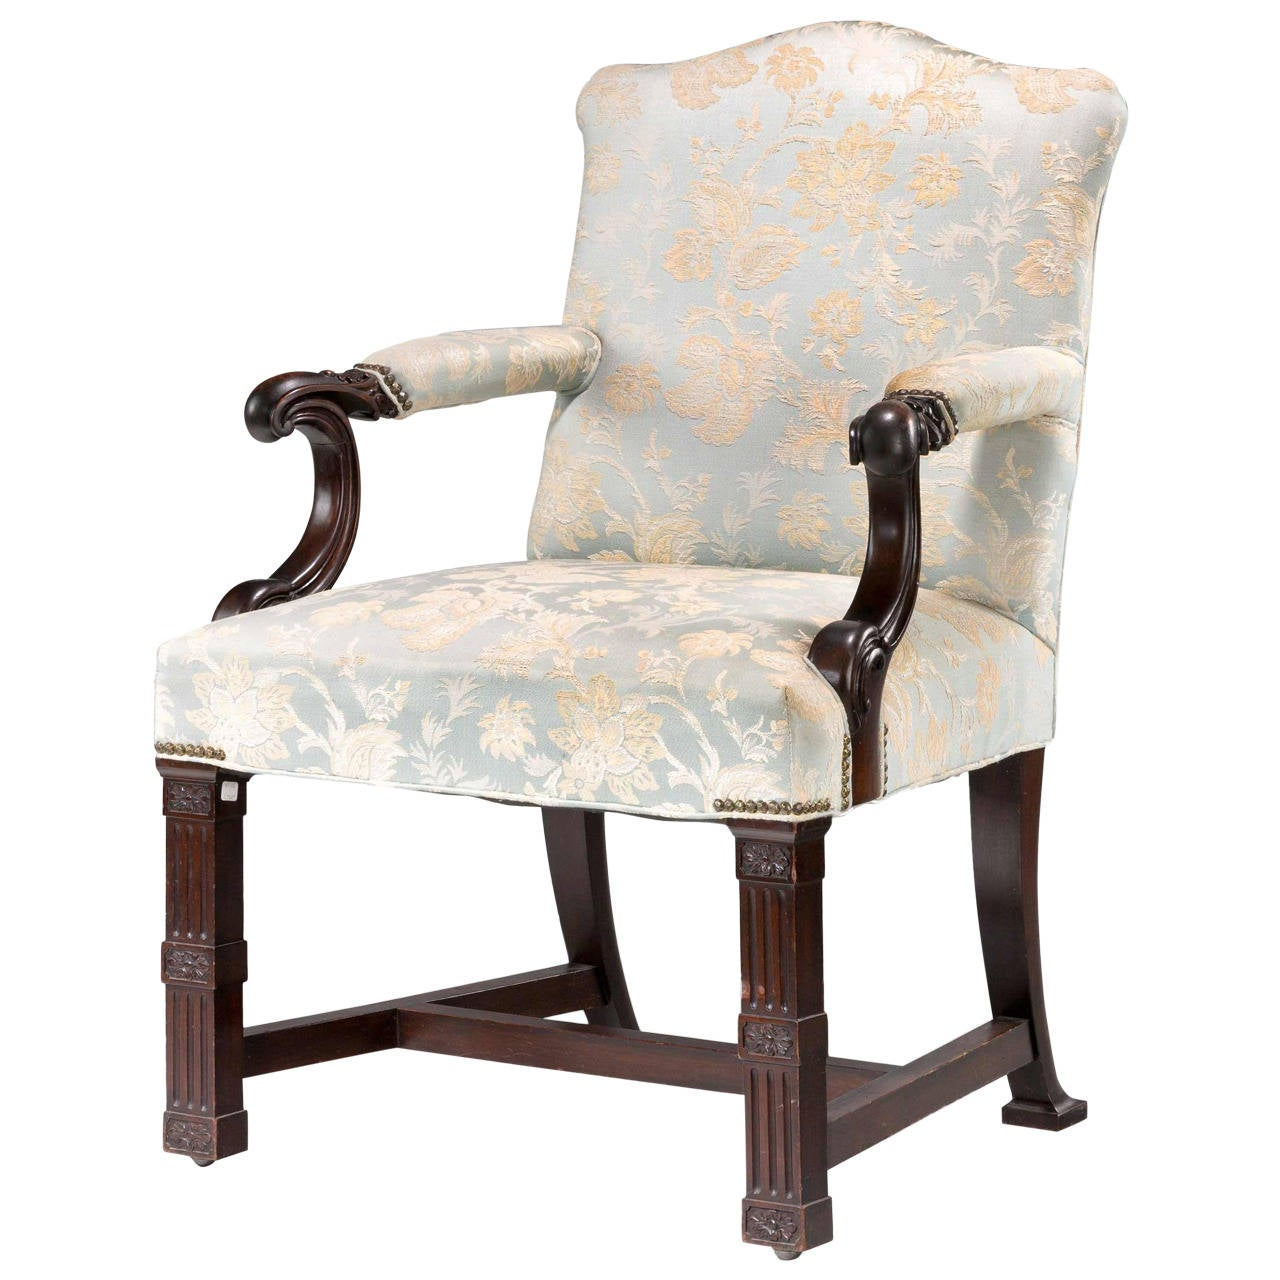 Chippendale Style Tufted Leather Library Chair By Schafer